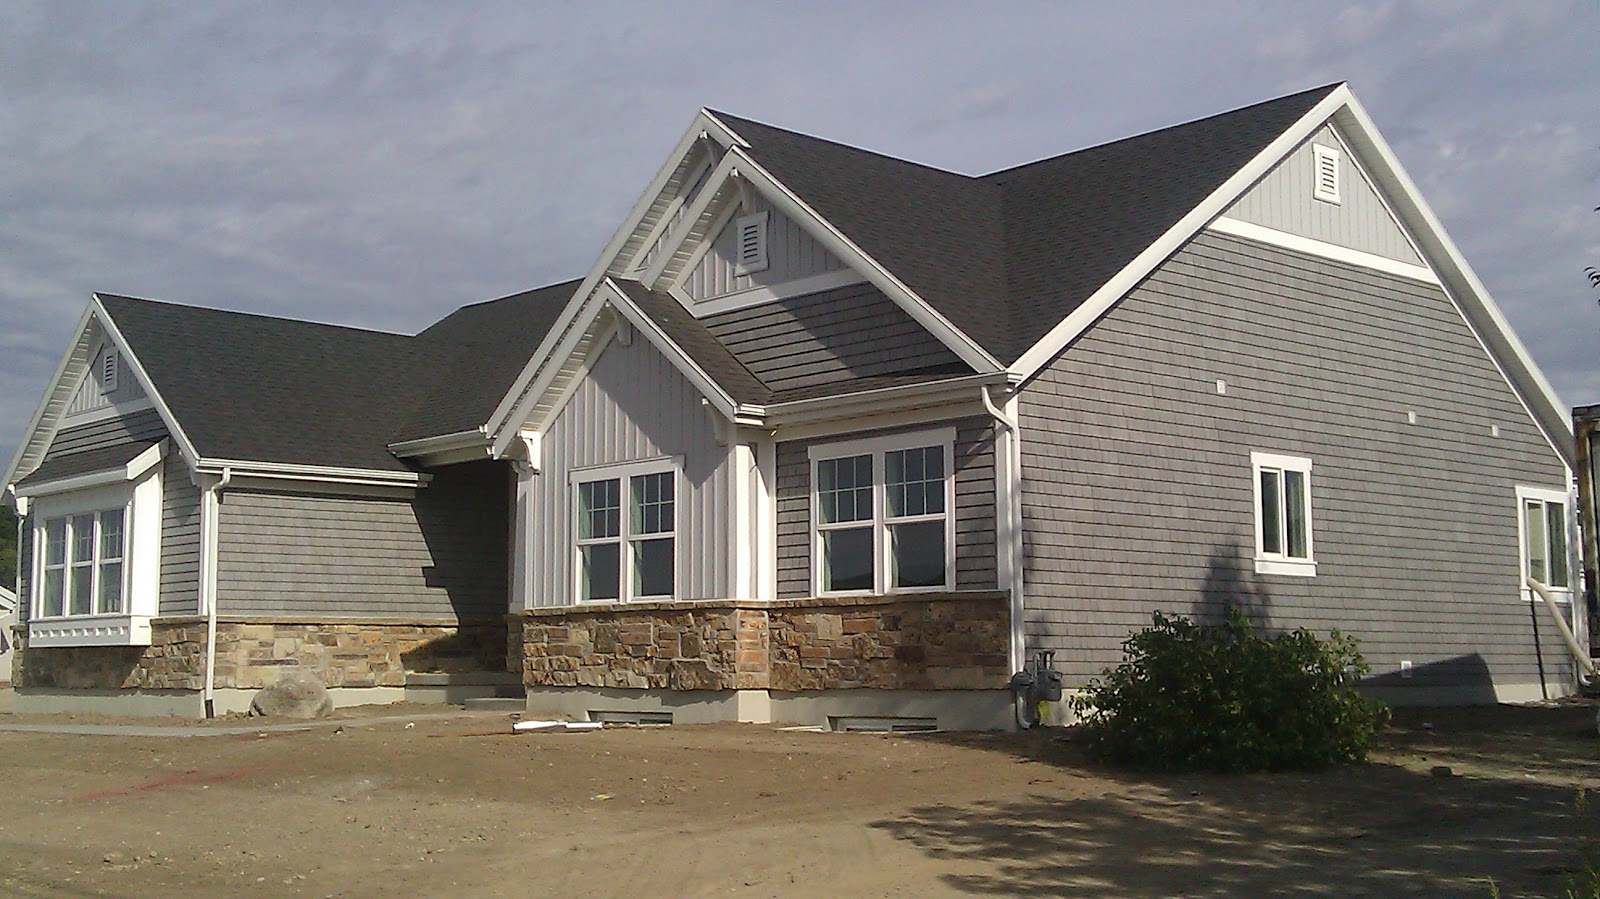 Stucco tech september 2012 for Stucco homes with stone accents